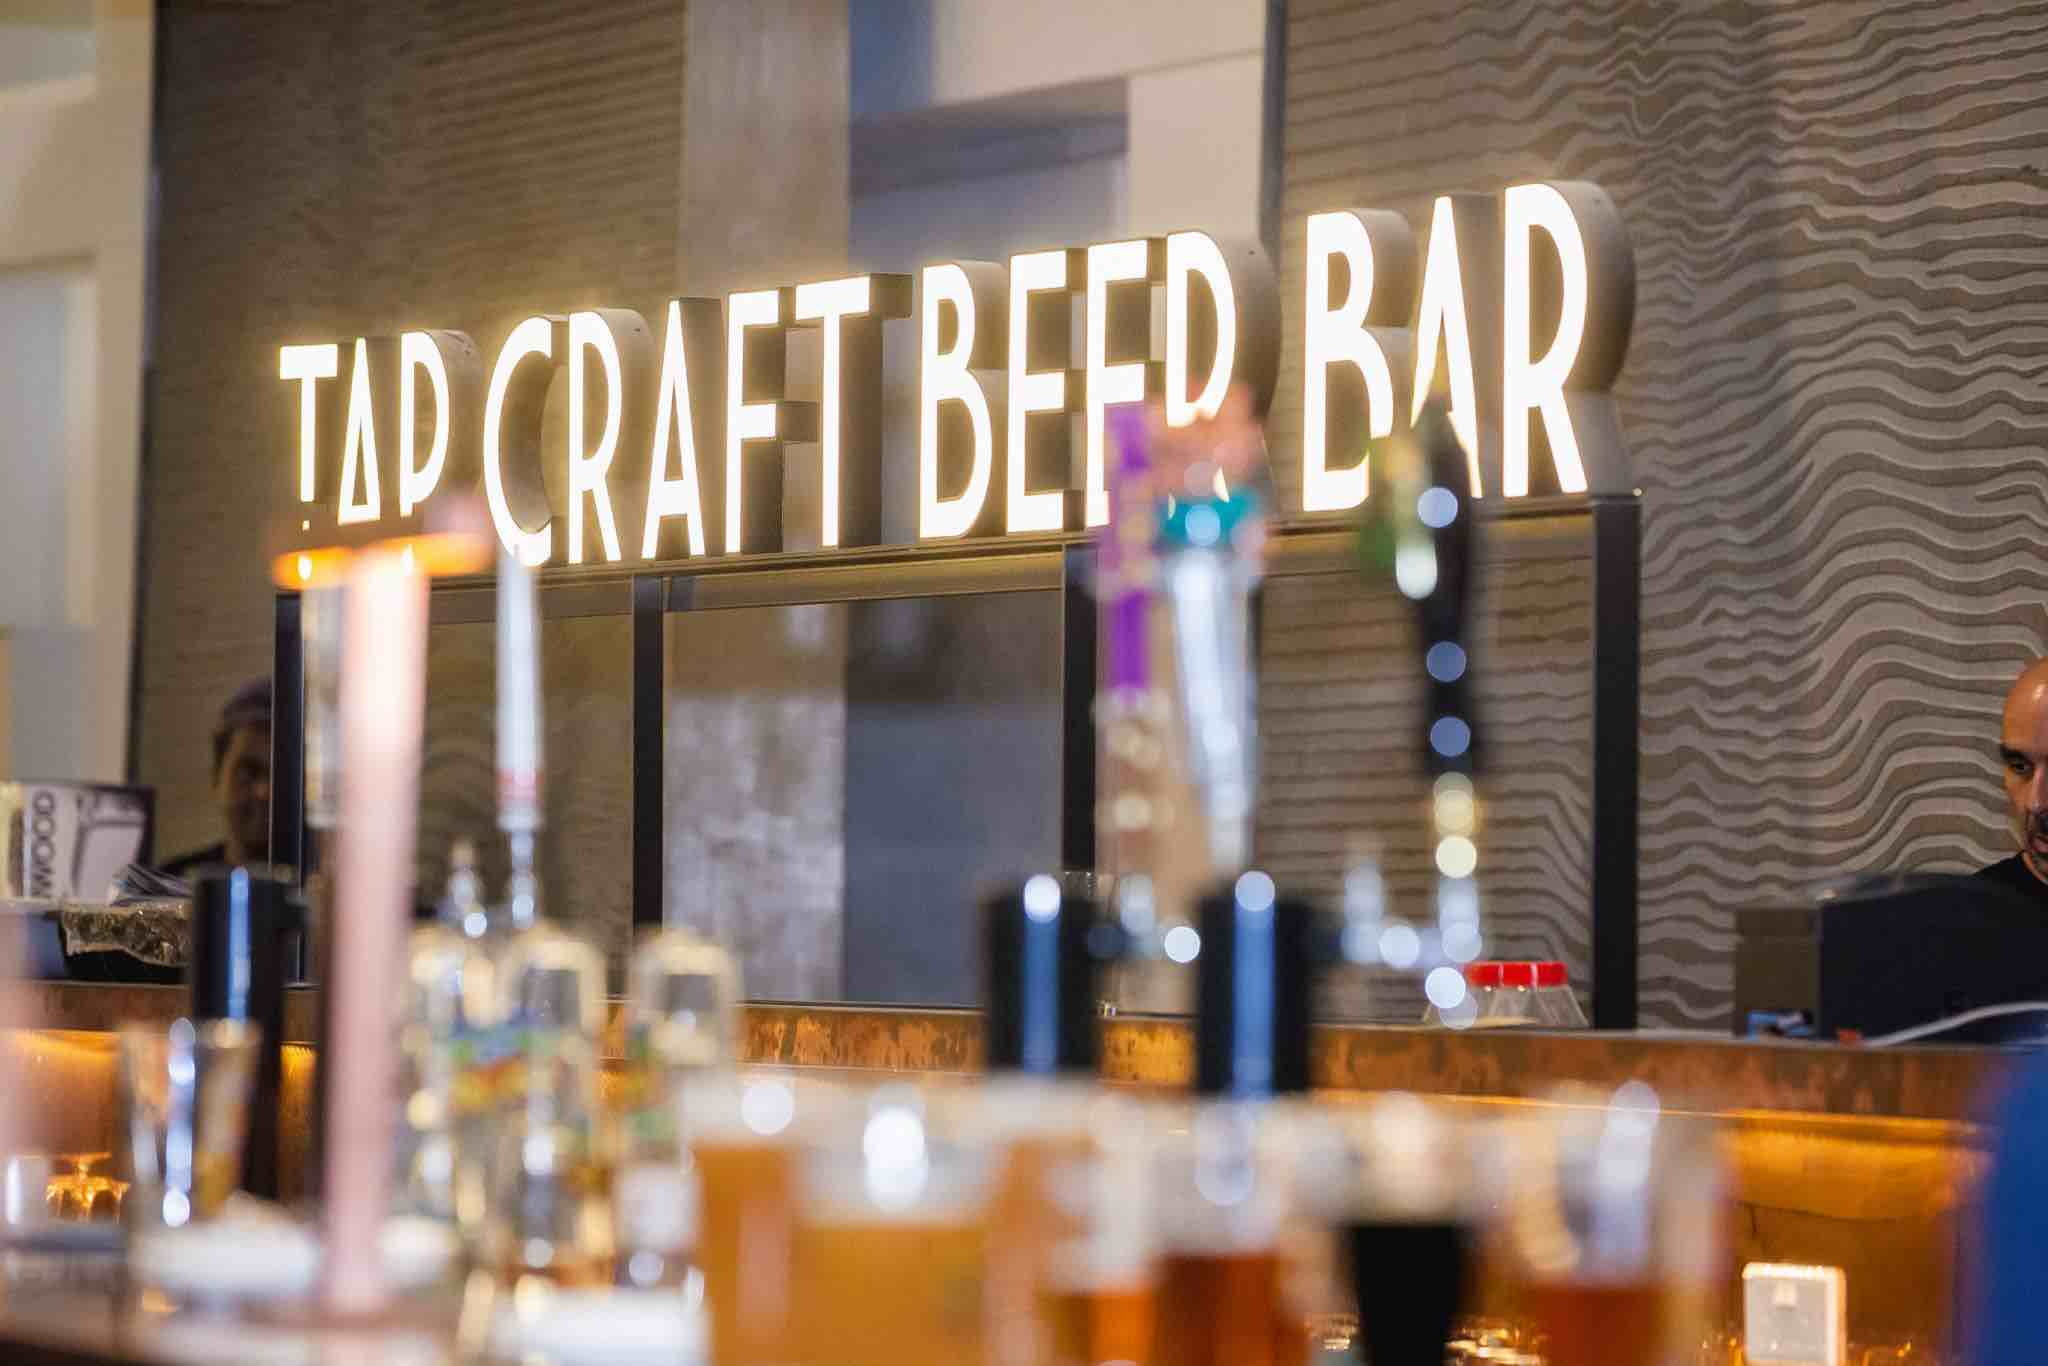 10 of the best craft beer bars in Singapore